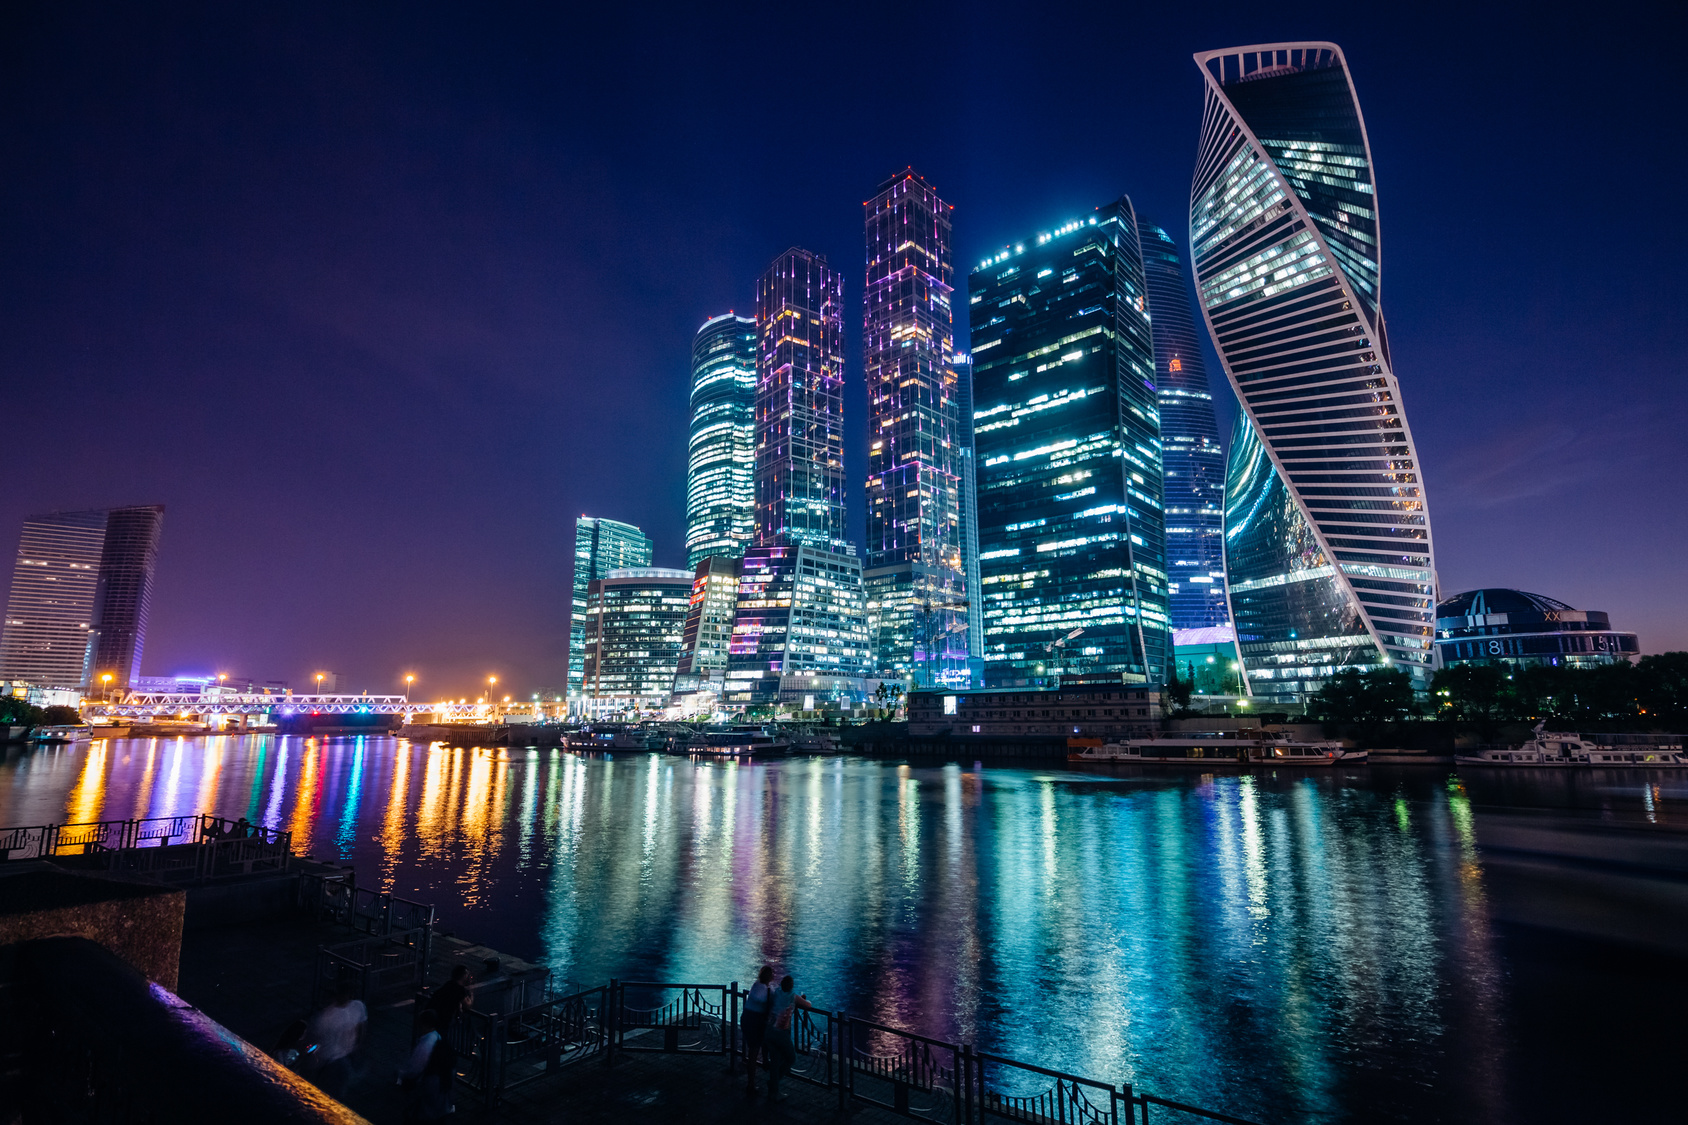 """According to an Australian IT research firm: - """"The Russian telecom market is the largest in Europe, supported by a population of about 143.5 million. The market is dominated by the western regions where the main cities and economic centres are concentrated. All sectors have been liberalised, with competition most prevalent in Moscow and St Petersburg."""""""